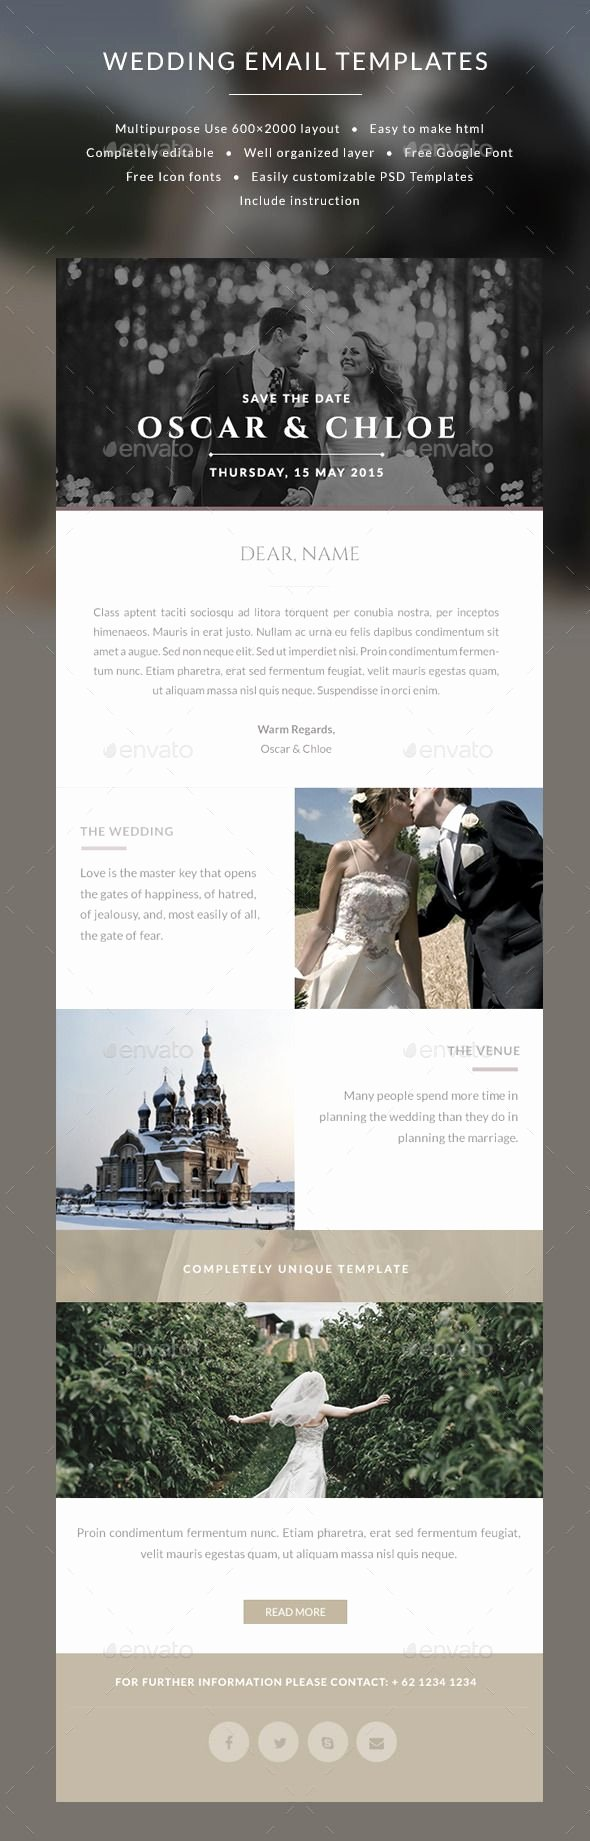 Email Wedding Invitation Template Beautiful the 25 Best Email Invites Ideas On Pinterest